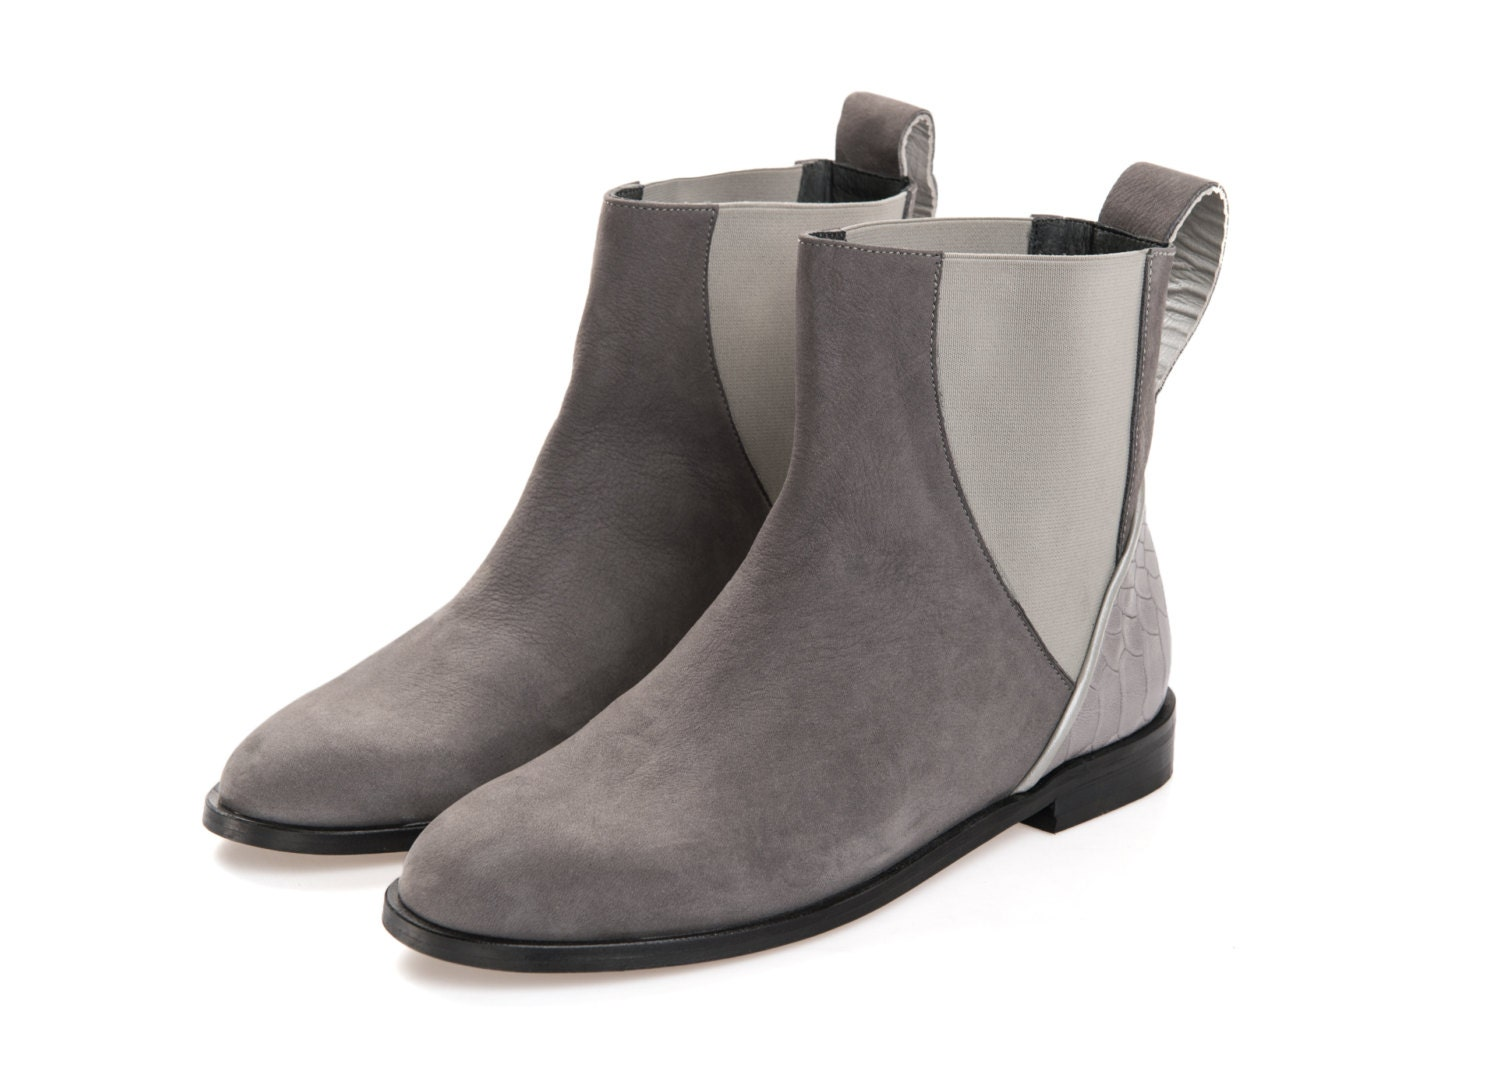 Kohl's offers many different styles and types of women's ankle boots, like peep toe booties, slip-on booties, Chelsea booties and more. All of these booties come from great brands like Circus by Sam Edelman, American Glamour by Badgley Mischka, Croft & Barrow, Olivia Miller, the Journee Collection and Apt. 9 booties.